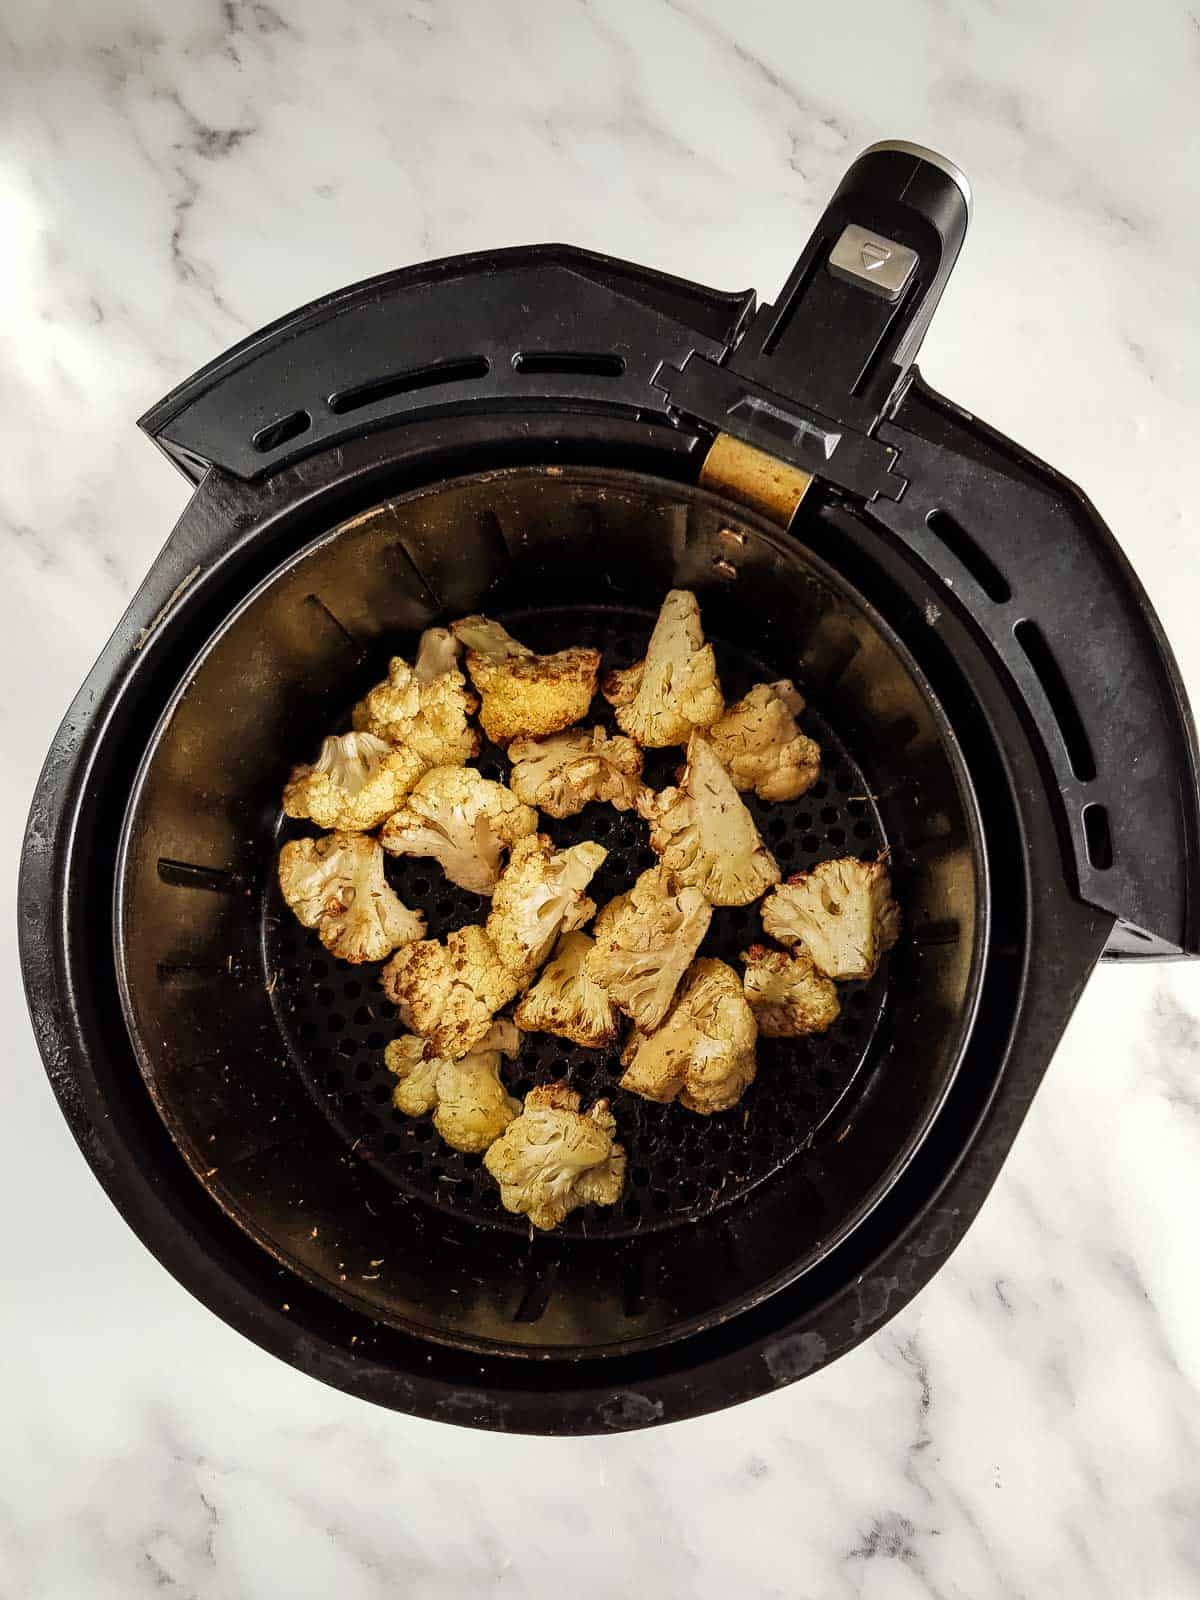 Roasted cauliflower in an air fryer.